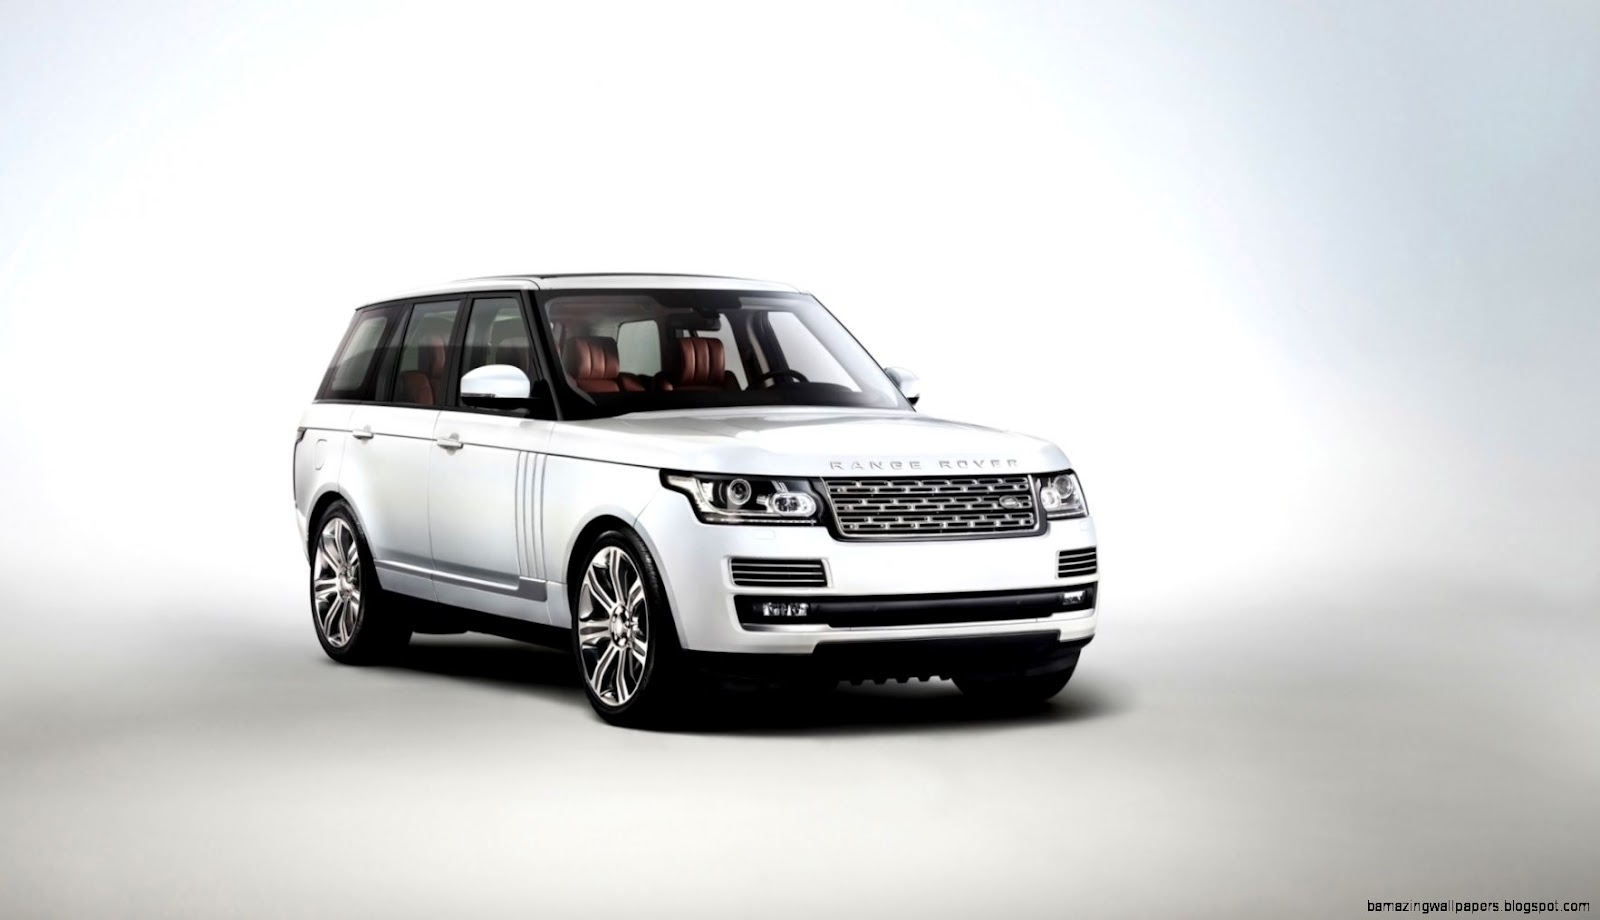 range rover models amazing wallpapers. Black Bedroom Furniture Sets. Home Design Ideas